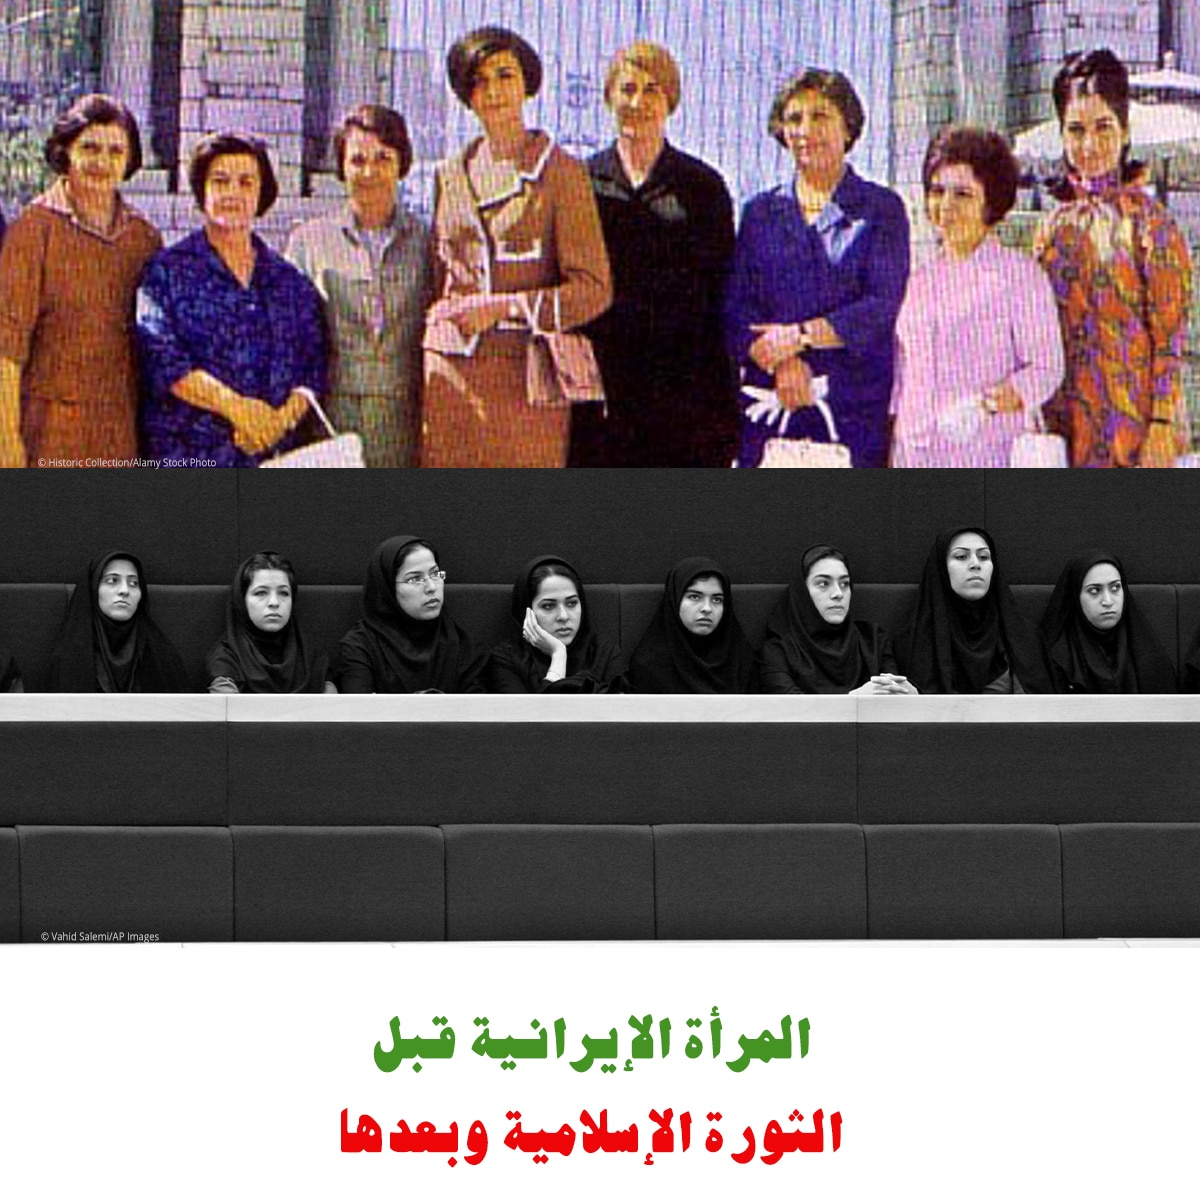 Top: Iranian women in business suits (© Historic Collection/Alamy Stock Photo). Bottom: Women wearing black headscarves (© Vahid Salemi/AP Images)